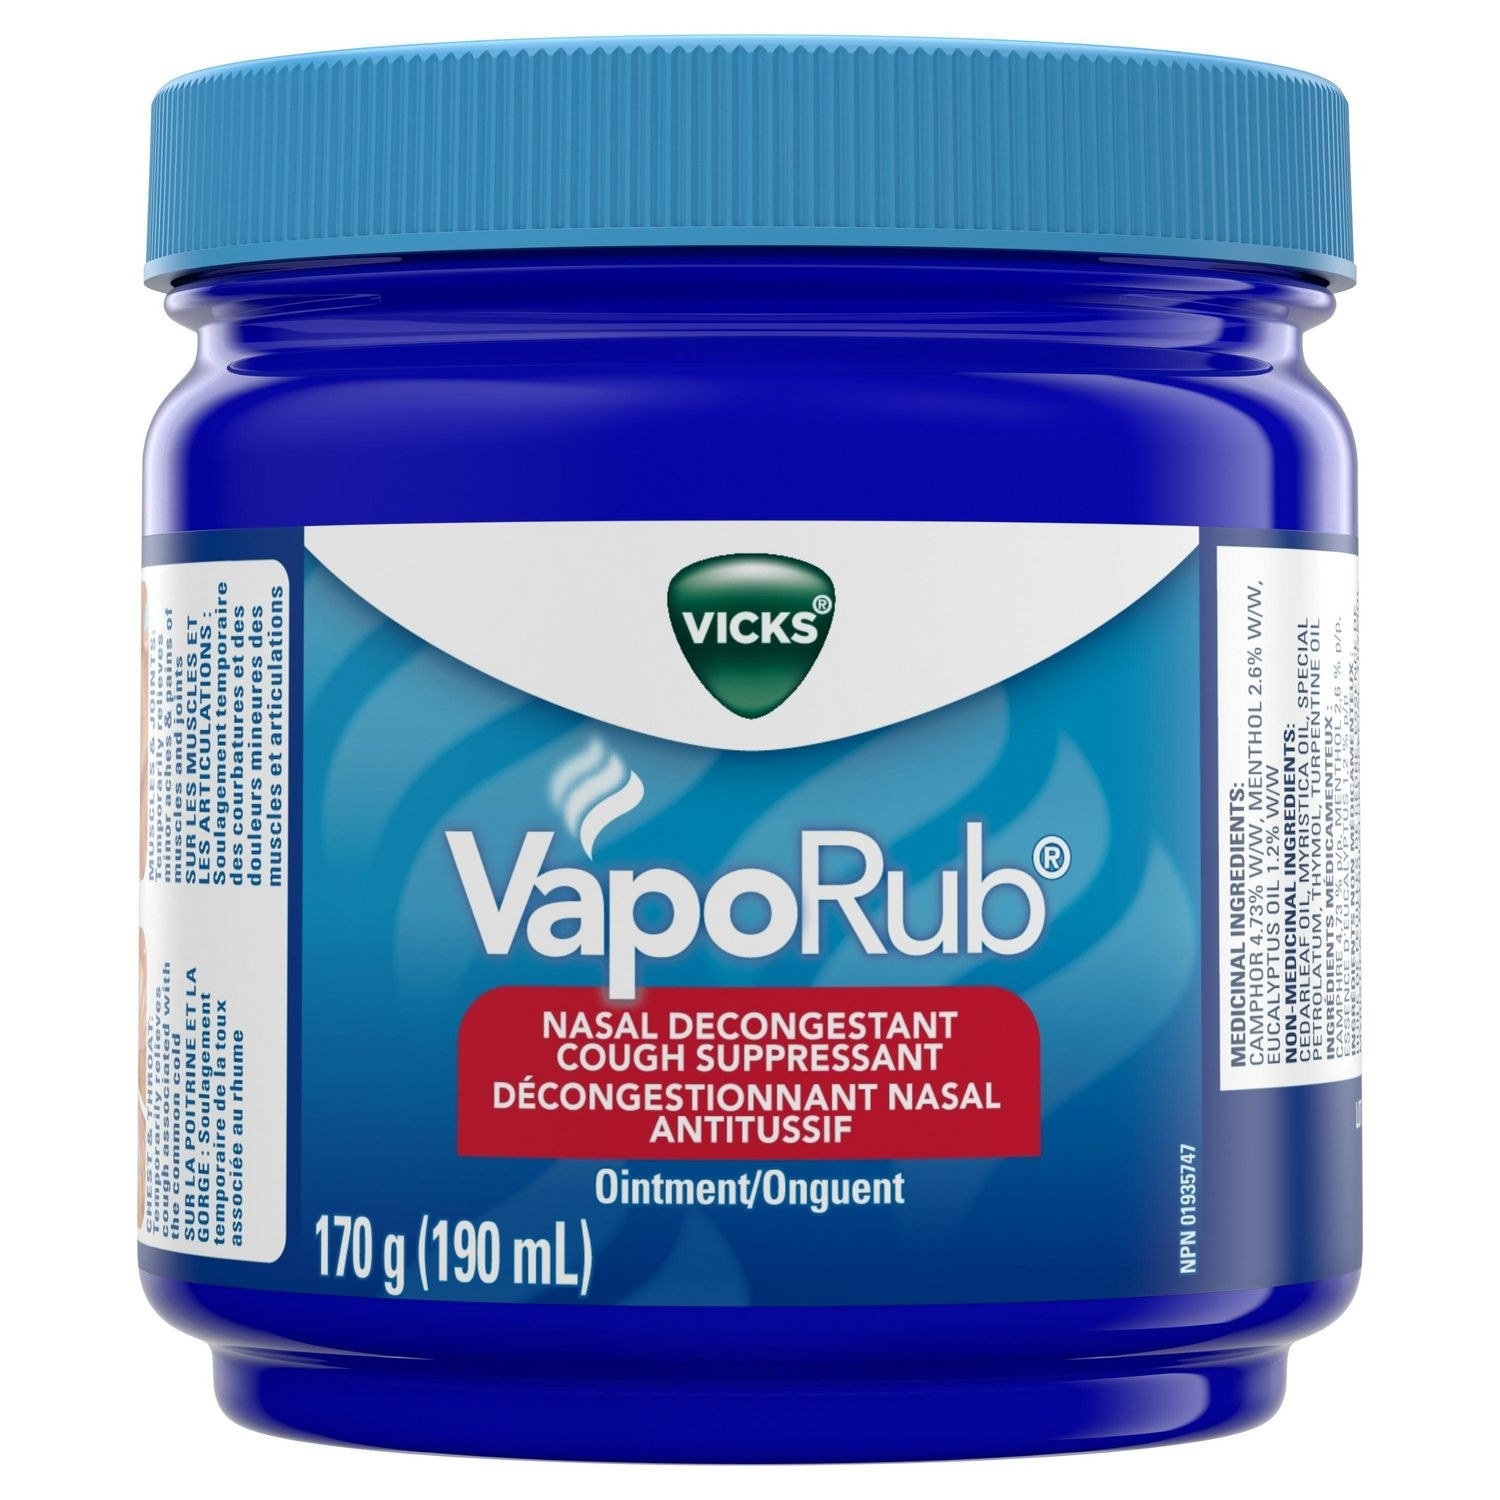 A jar of Vick VapoRub